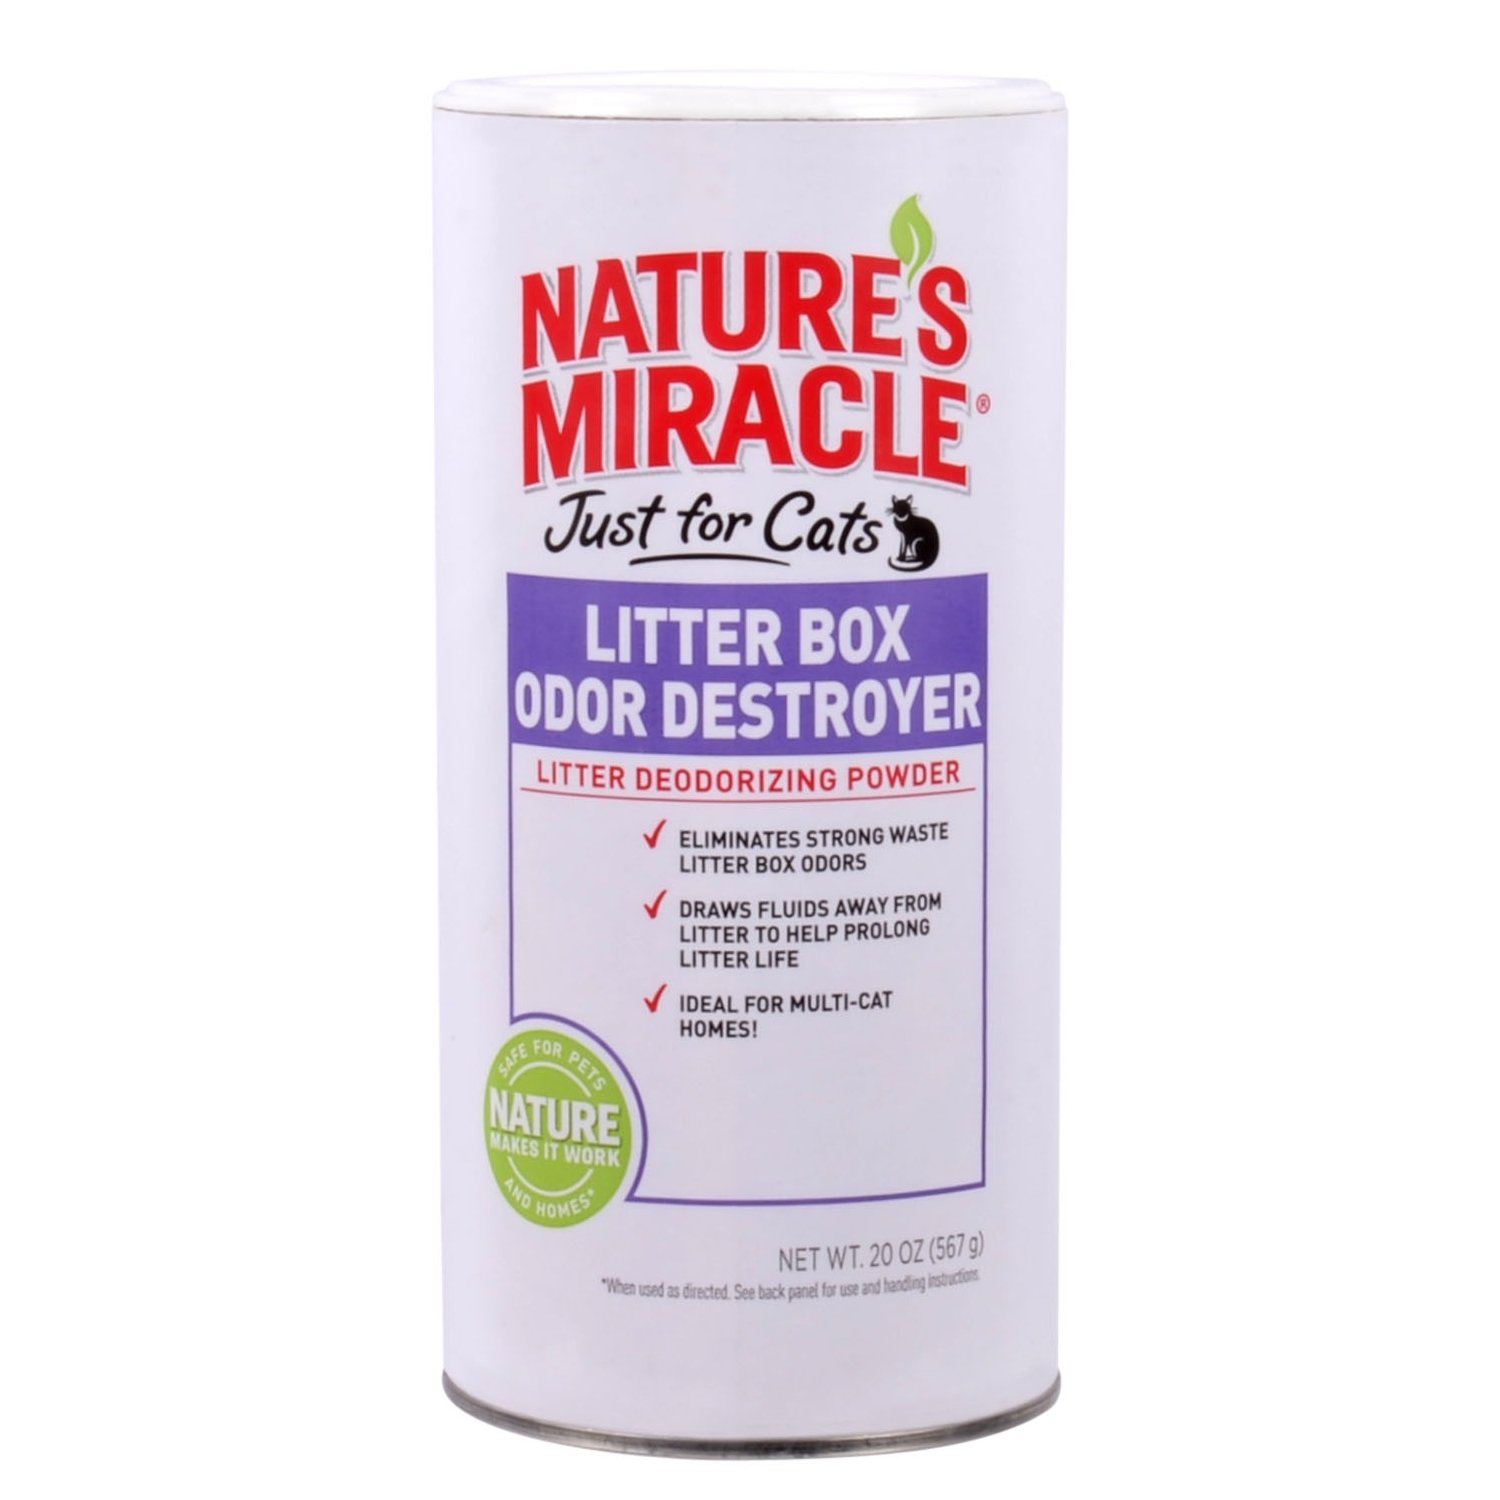 Nature's Miracle Just for Cats Odor Destroyer Litter Powder